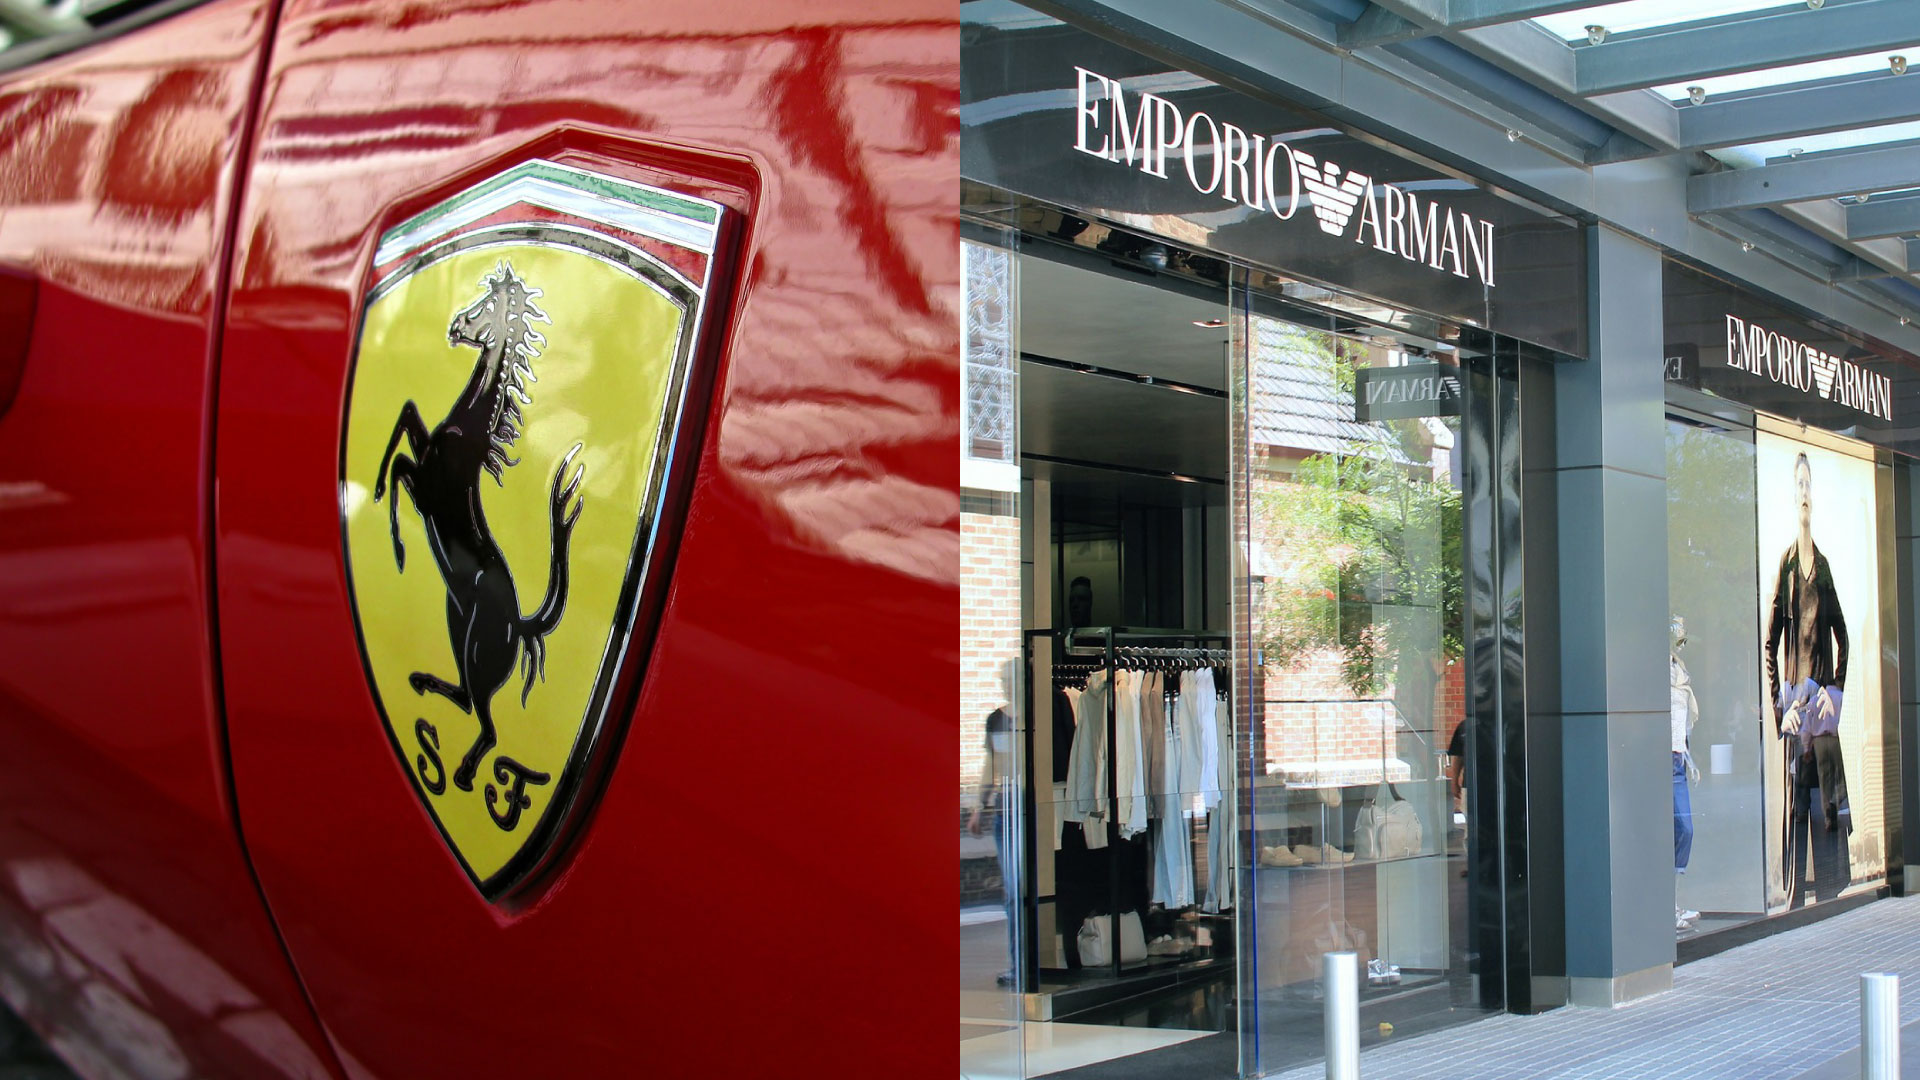 Ferrari and Armani together in the fashion